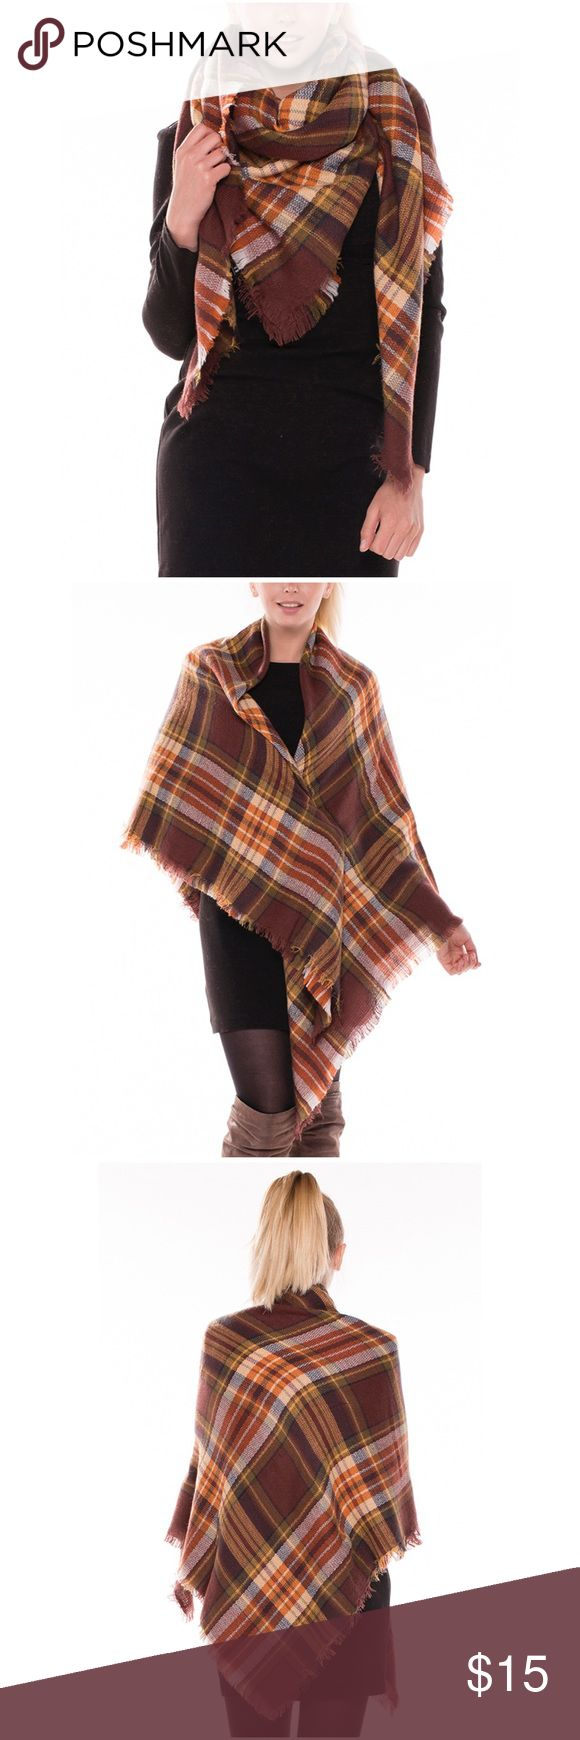 "Brown Tartan Oversize Check Plaid Blanket Scarf Material: 100% Acrylic, soft touch  Weight: 7.65oz Size: 57"" x 57"", large square wrap Oversized styling, check plaid tartan pattern, frayed ends Hand wash or dry clean only, do not bleach Accessories Scarves & Wraps"